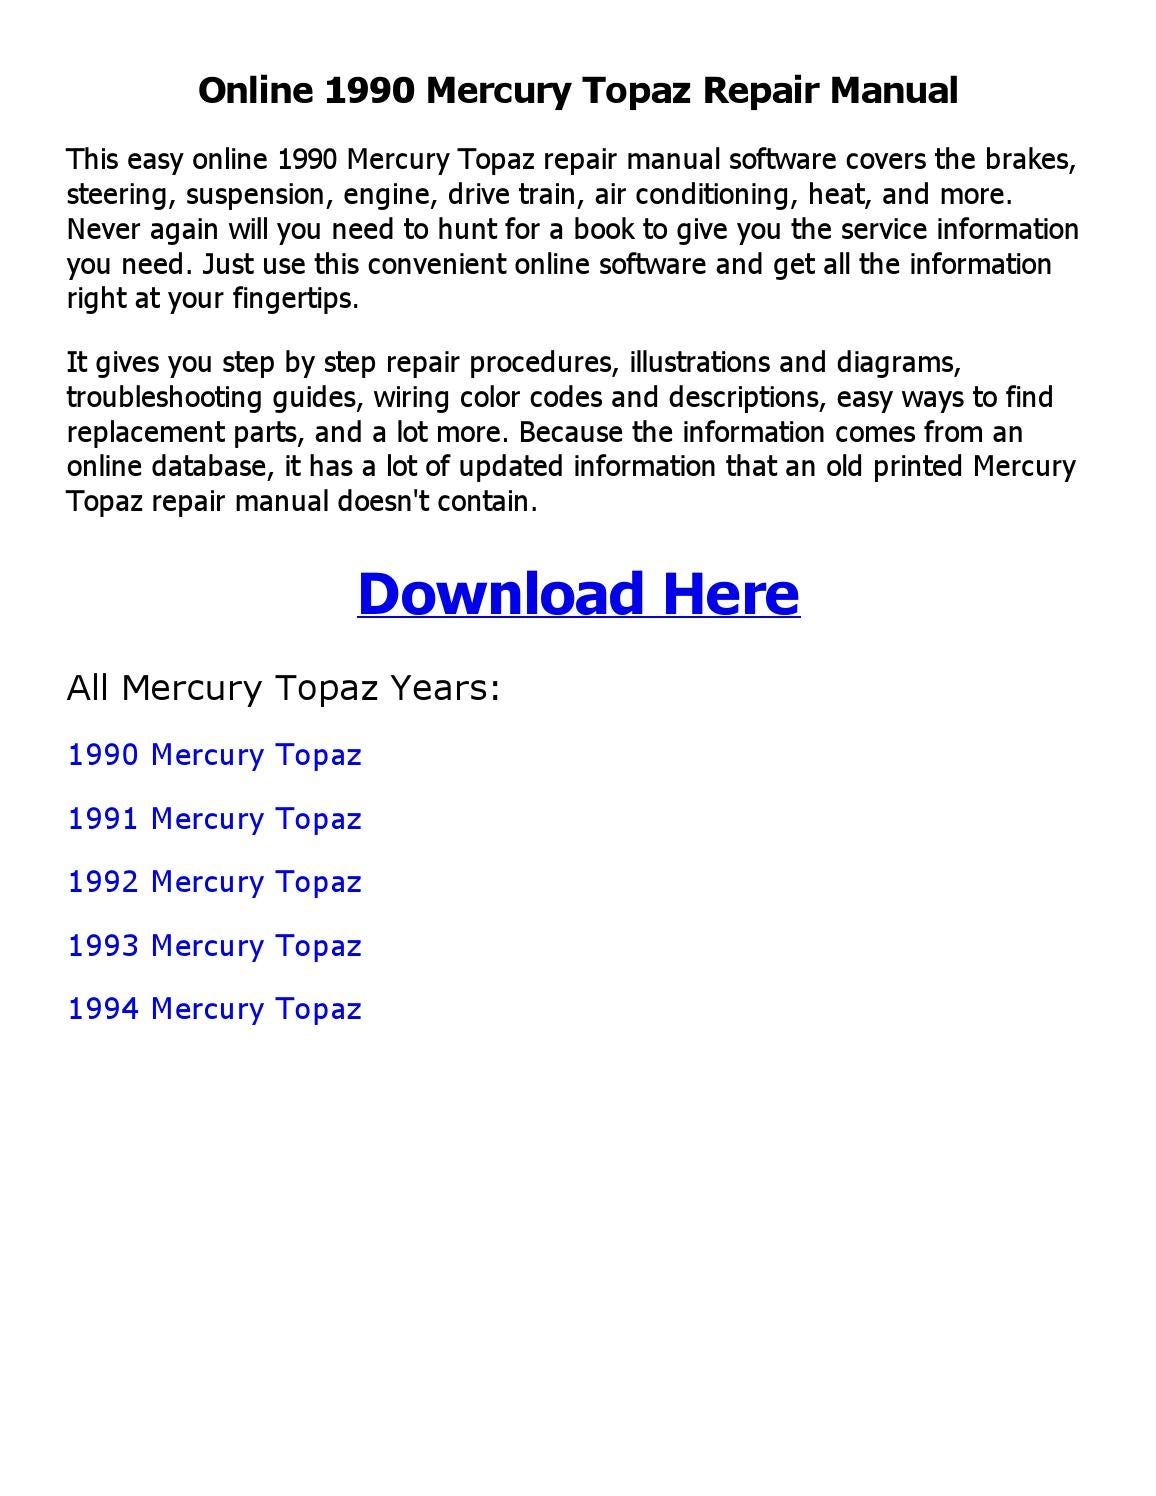 1992 Mercury Topaz Parts Diagram Electrical Wiring Diagrams 1993 Sable Engine 1990 Repair Manual Online By Shoaibsiddique Issuu